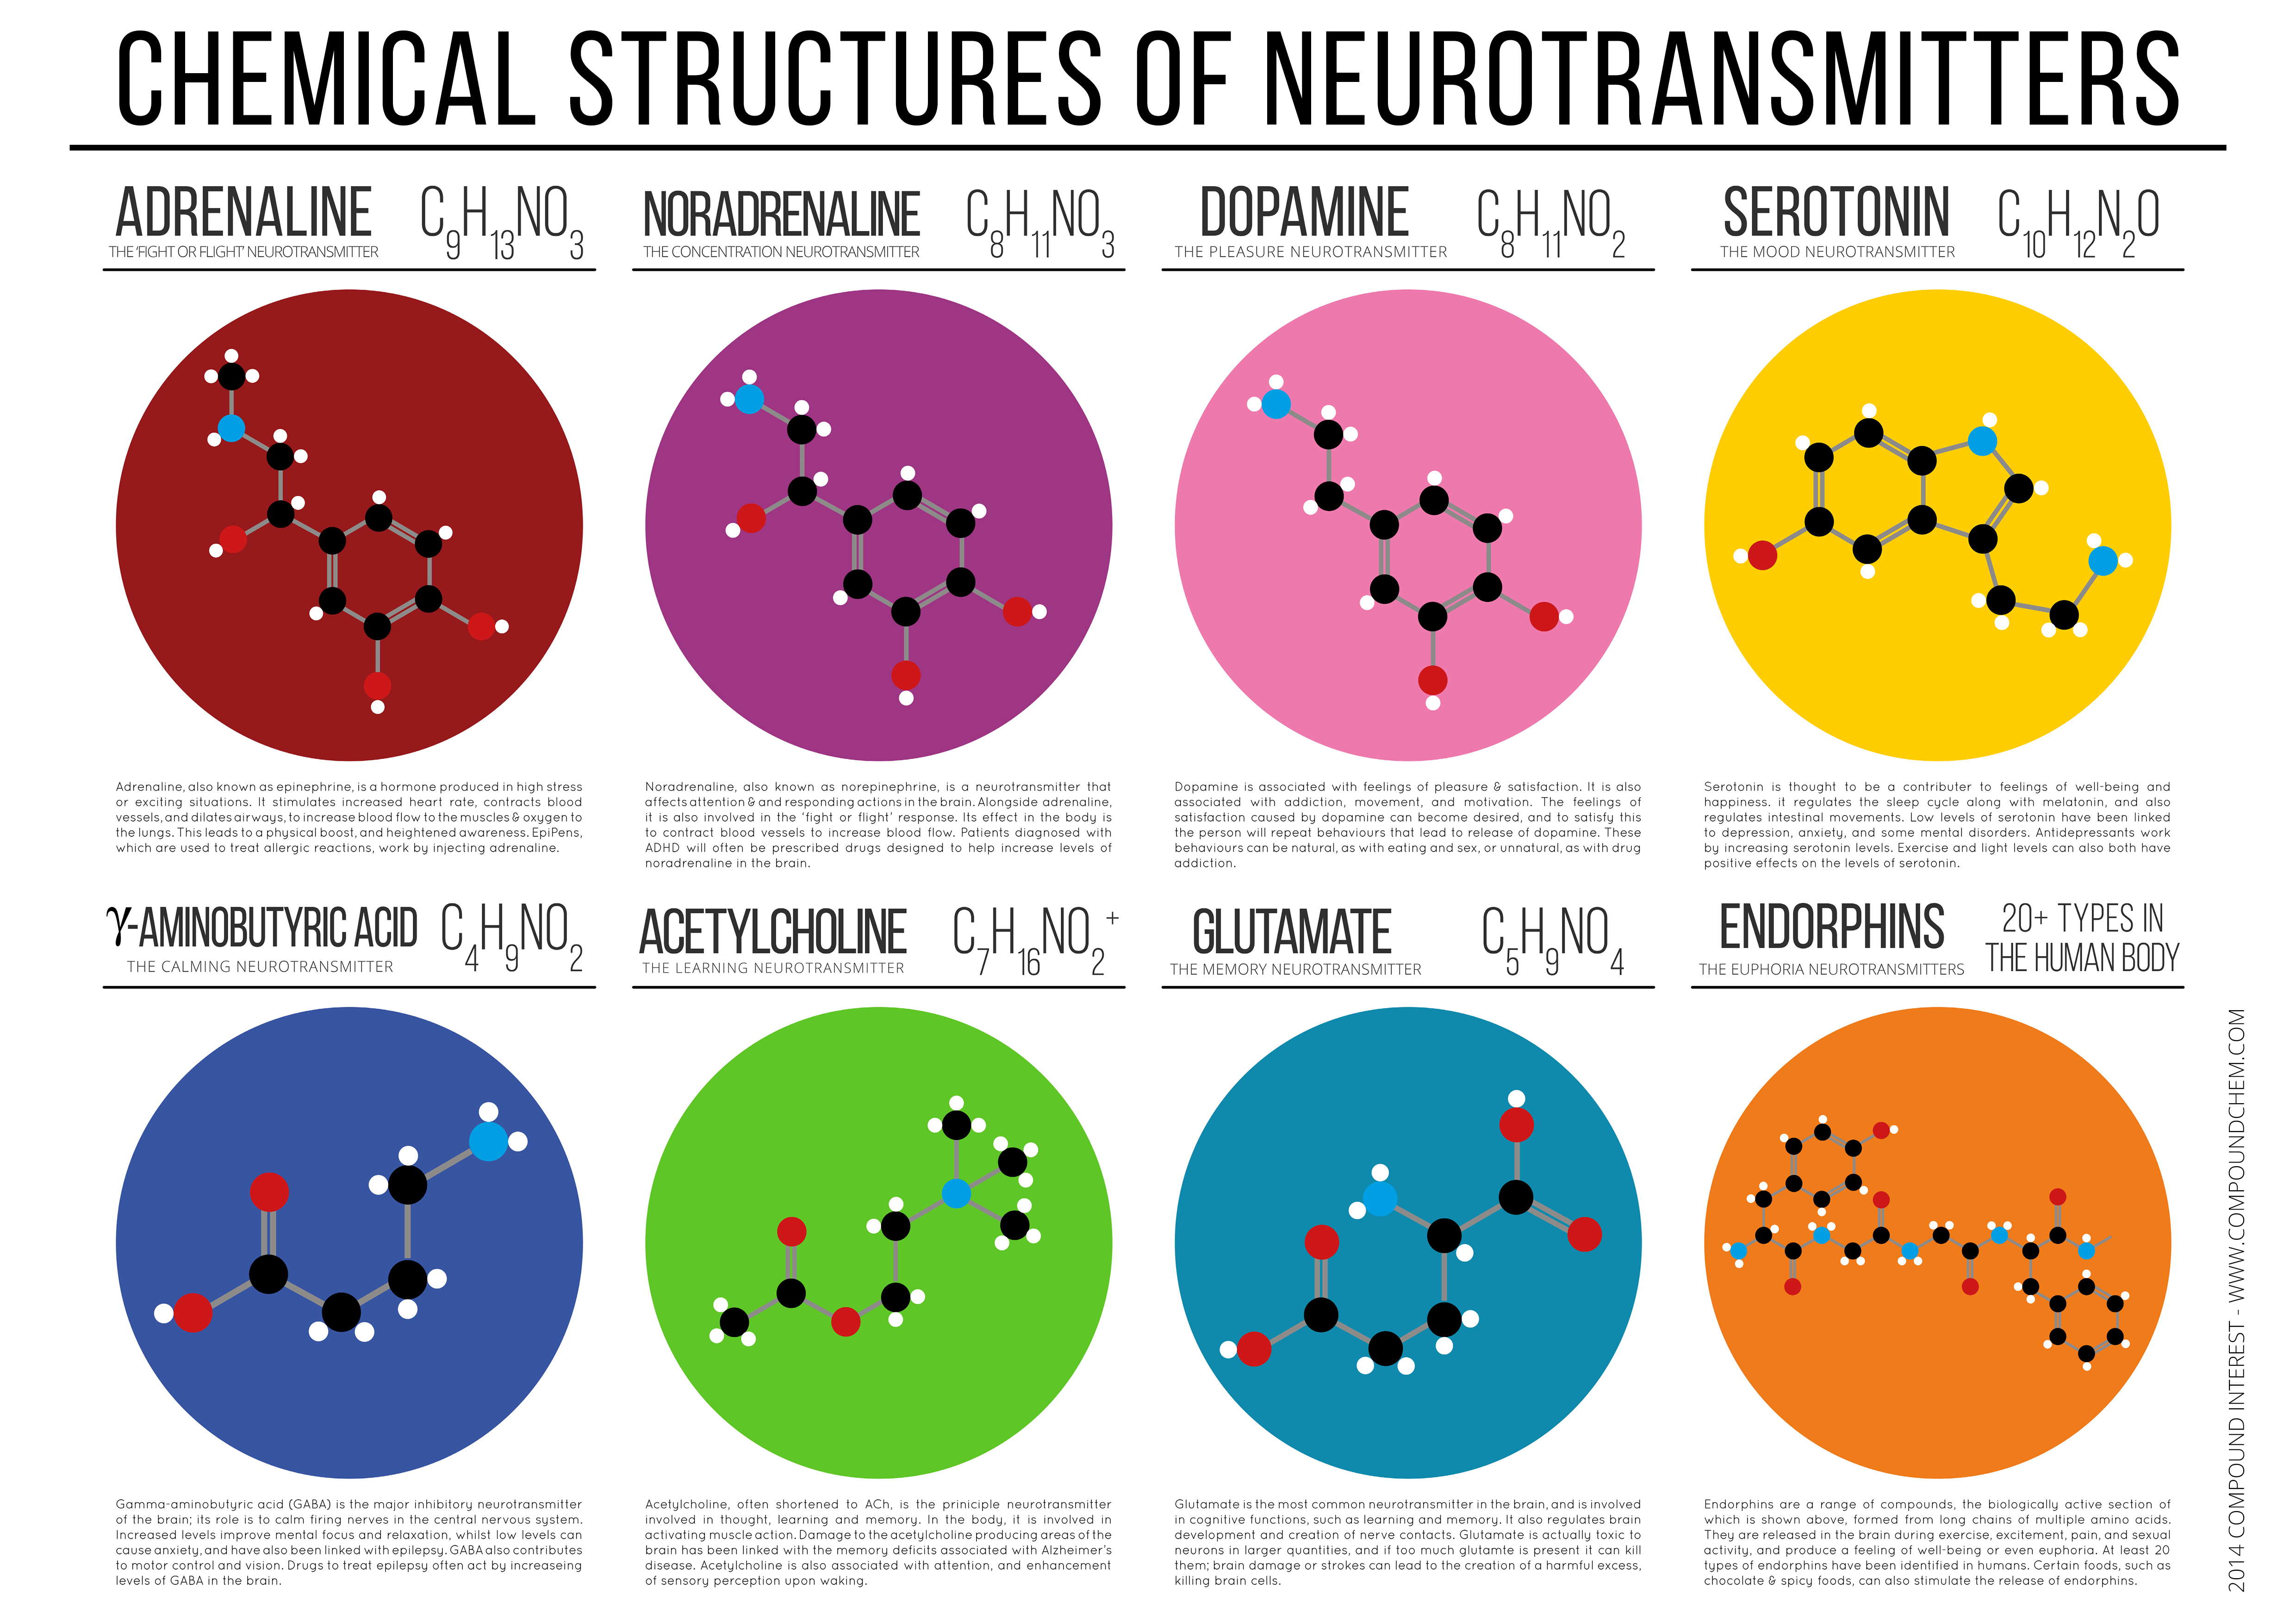 A Bit Of A Chemistrybiology Tie In Today With A Series Of Posters